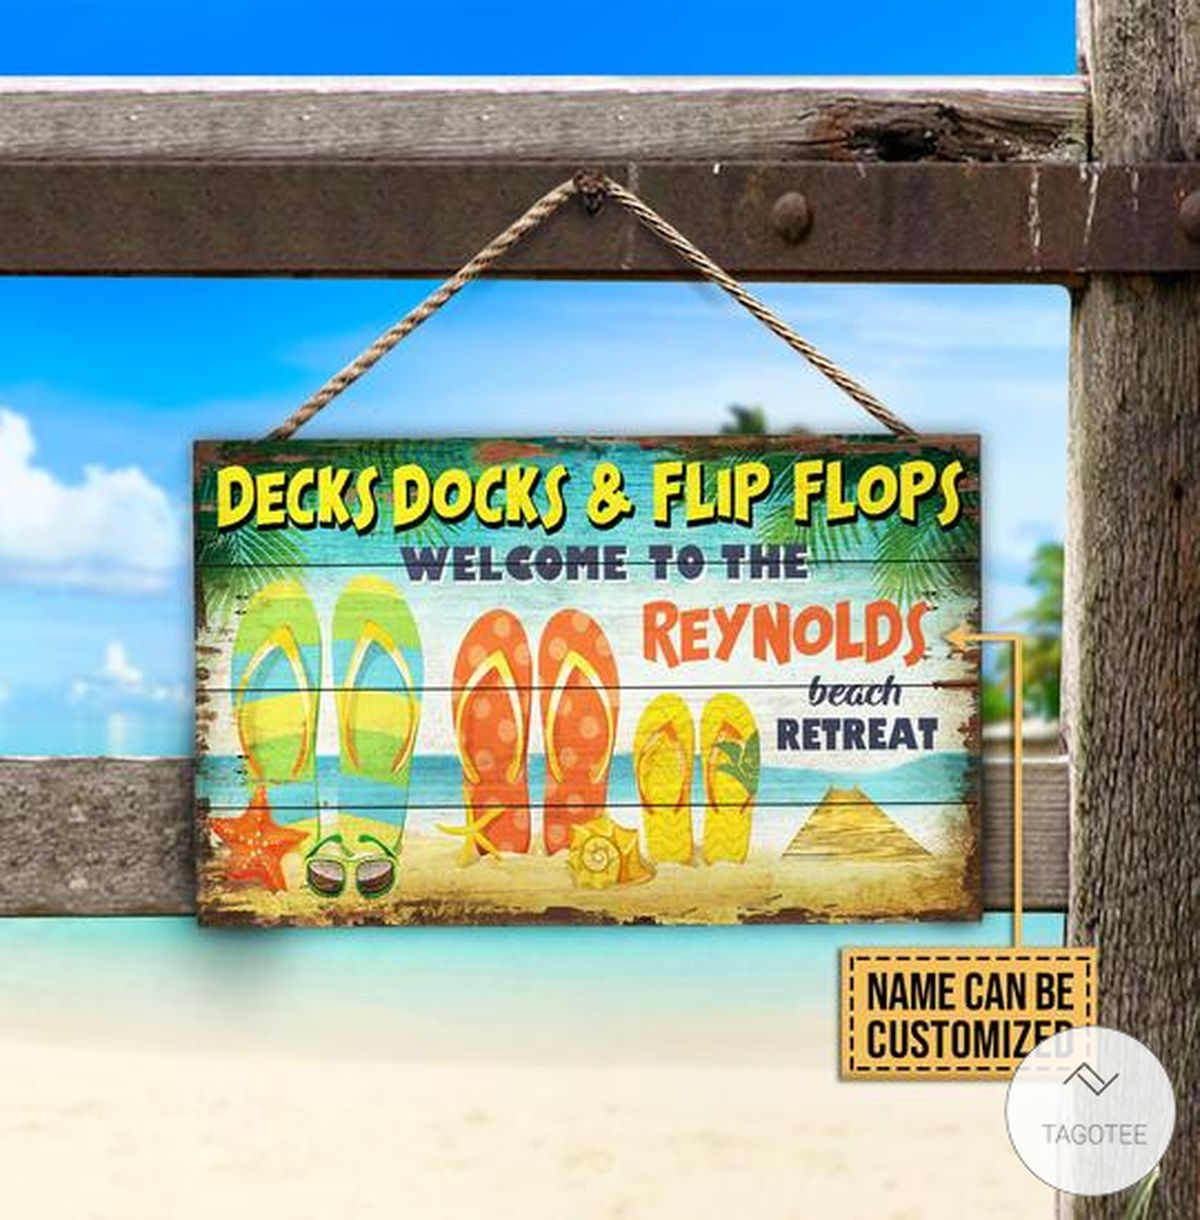 Personalized Beach Decks Docks And Flip Flops Welcome To The Beach Retreat Rectangle Wood Sign